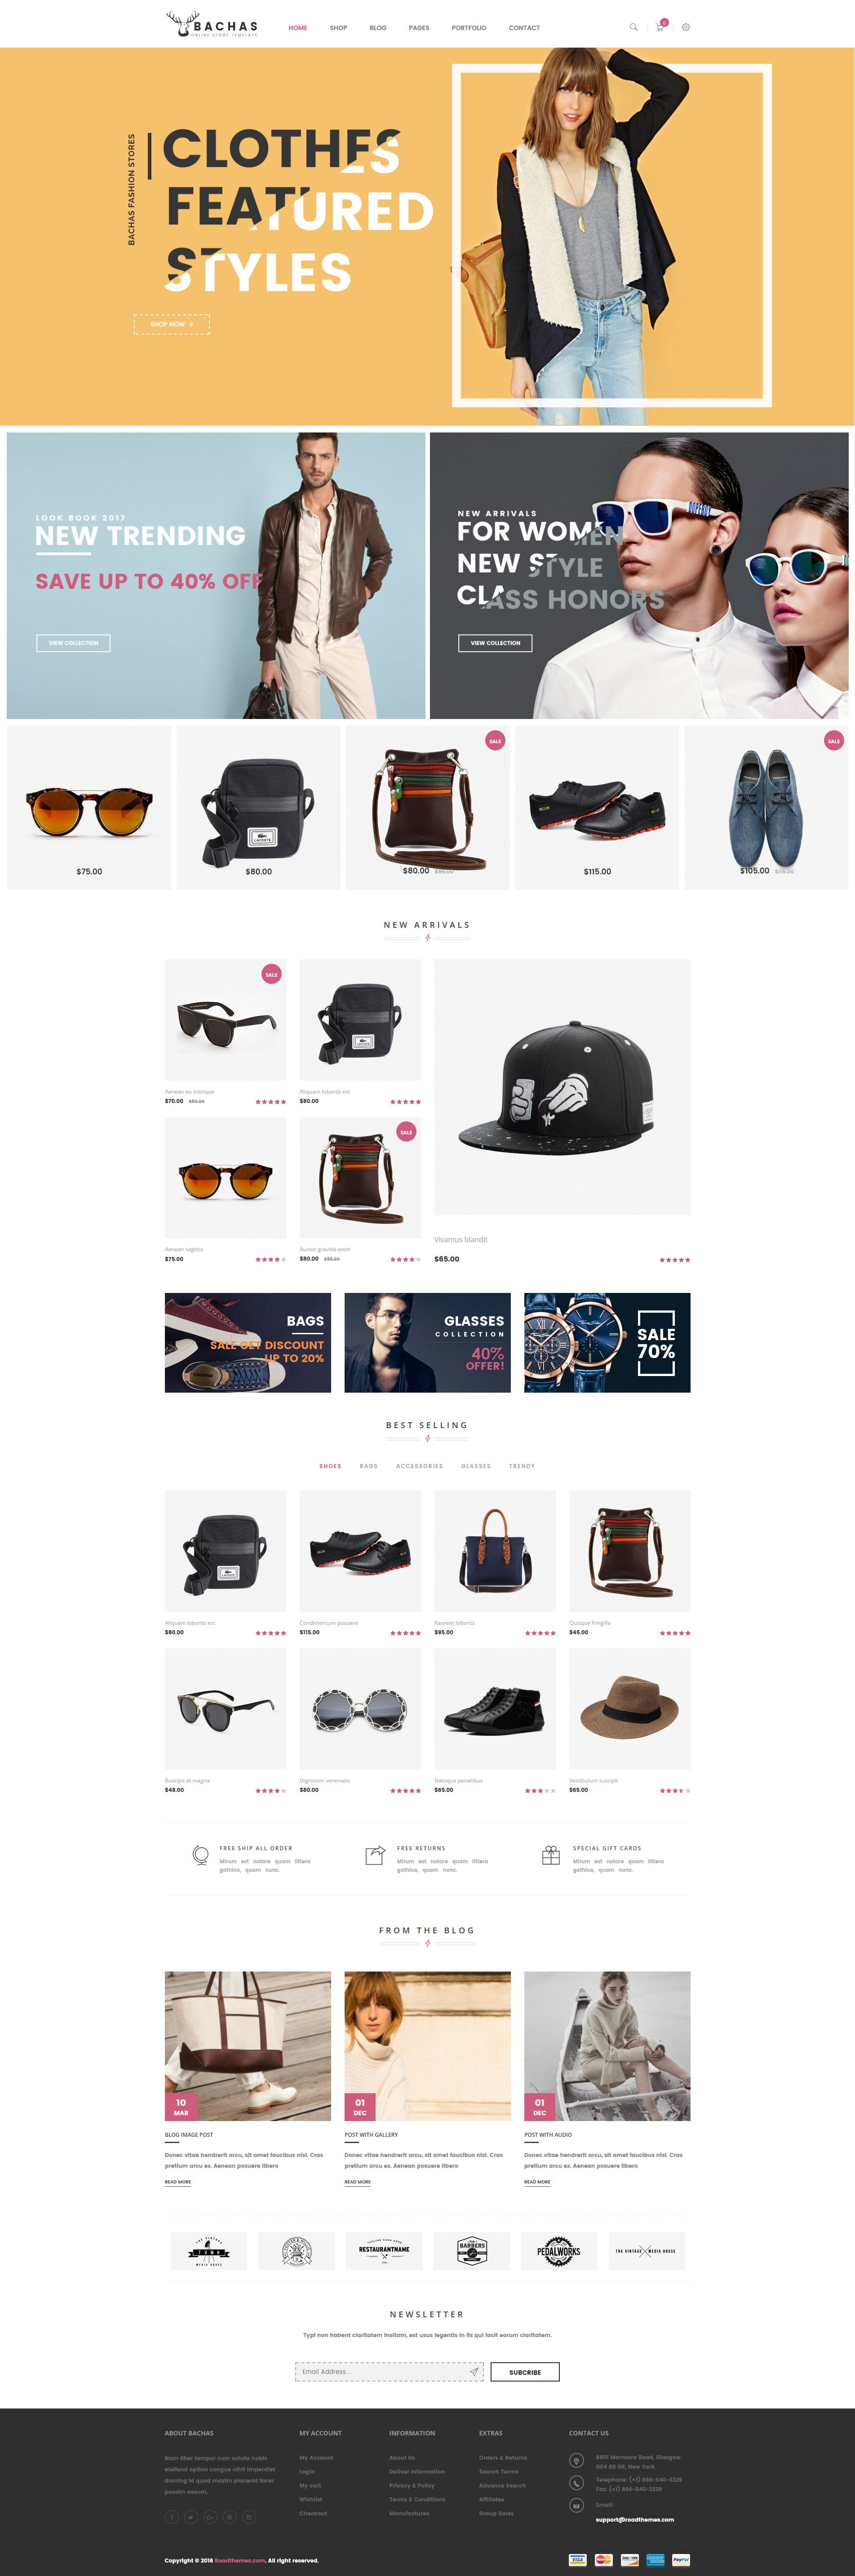 Bachas Responsive WordPress Theme is an elegant design WooCommerce with 4 layout homepages. It supplies many necessary features for an ecommerce online store.